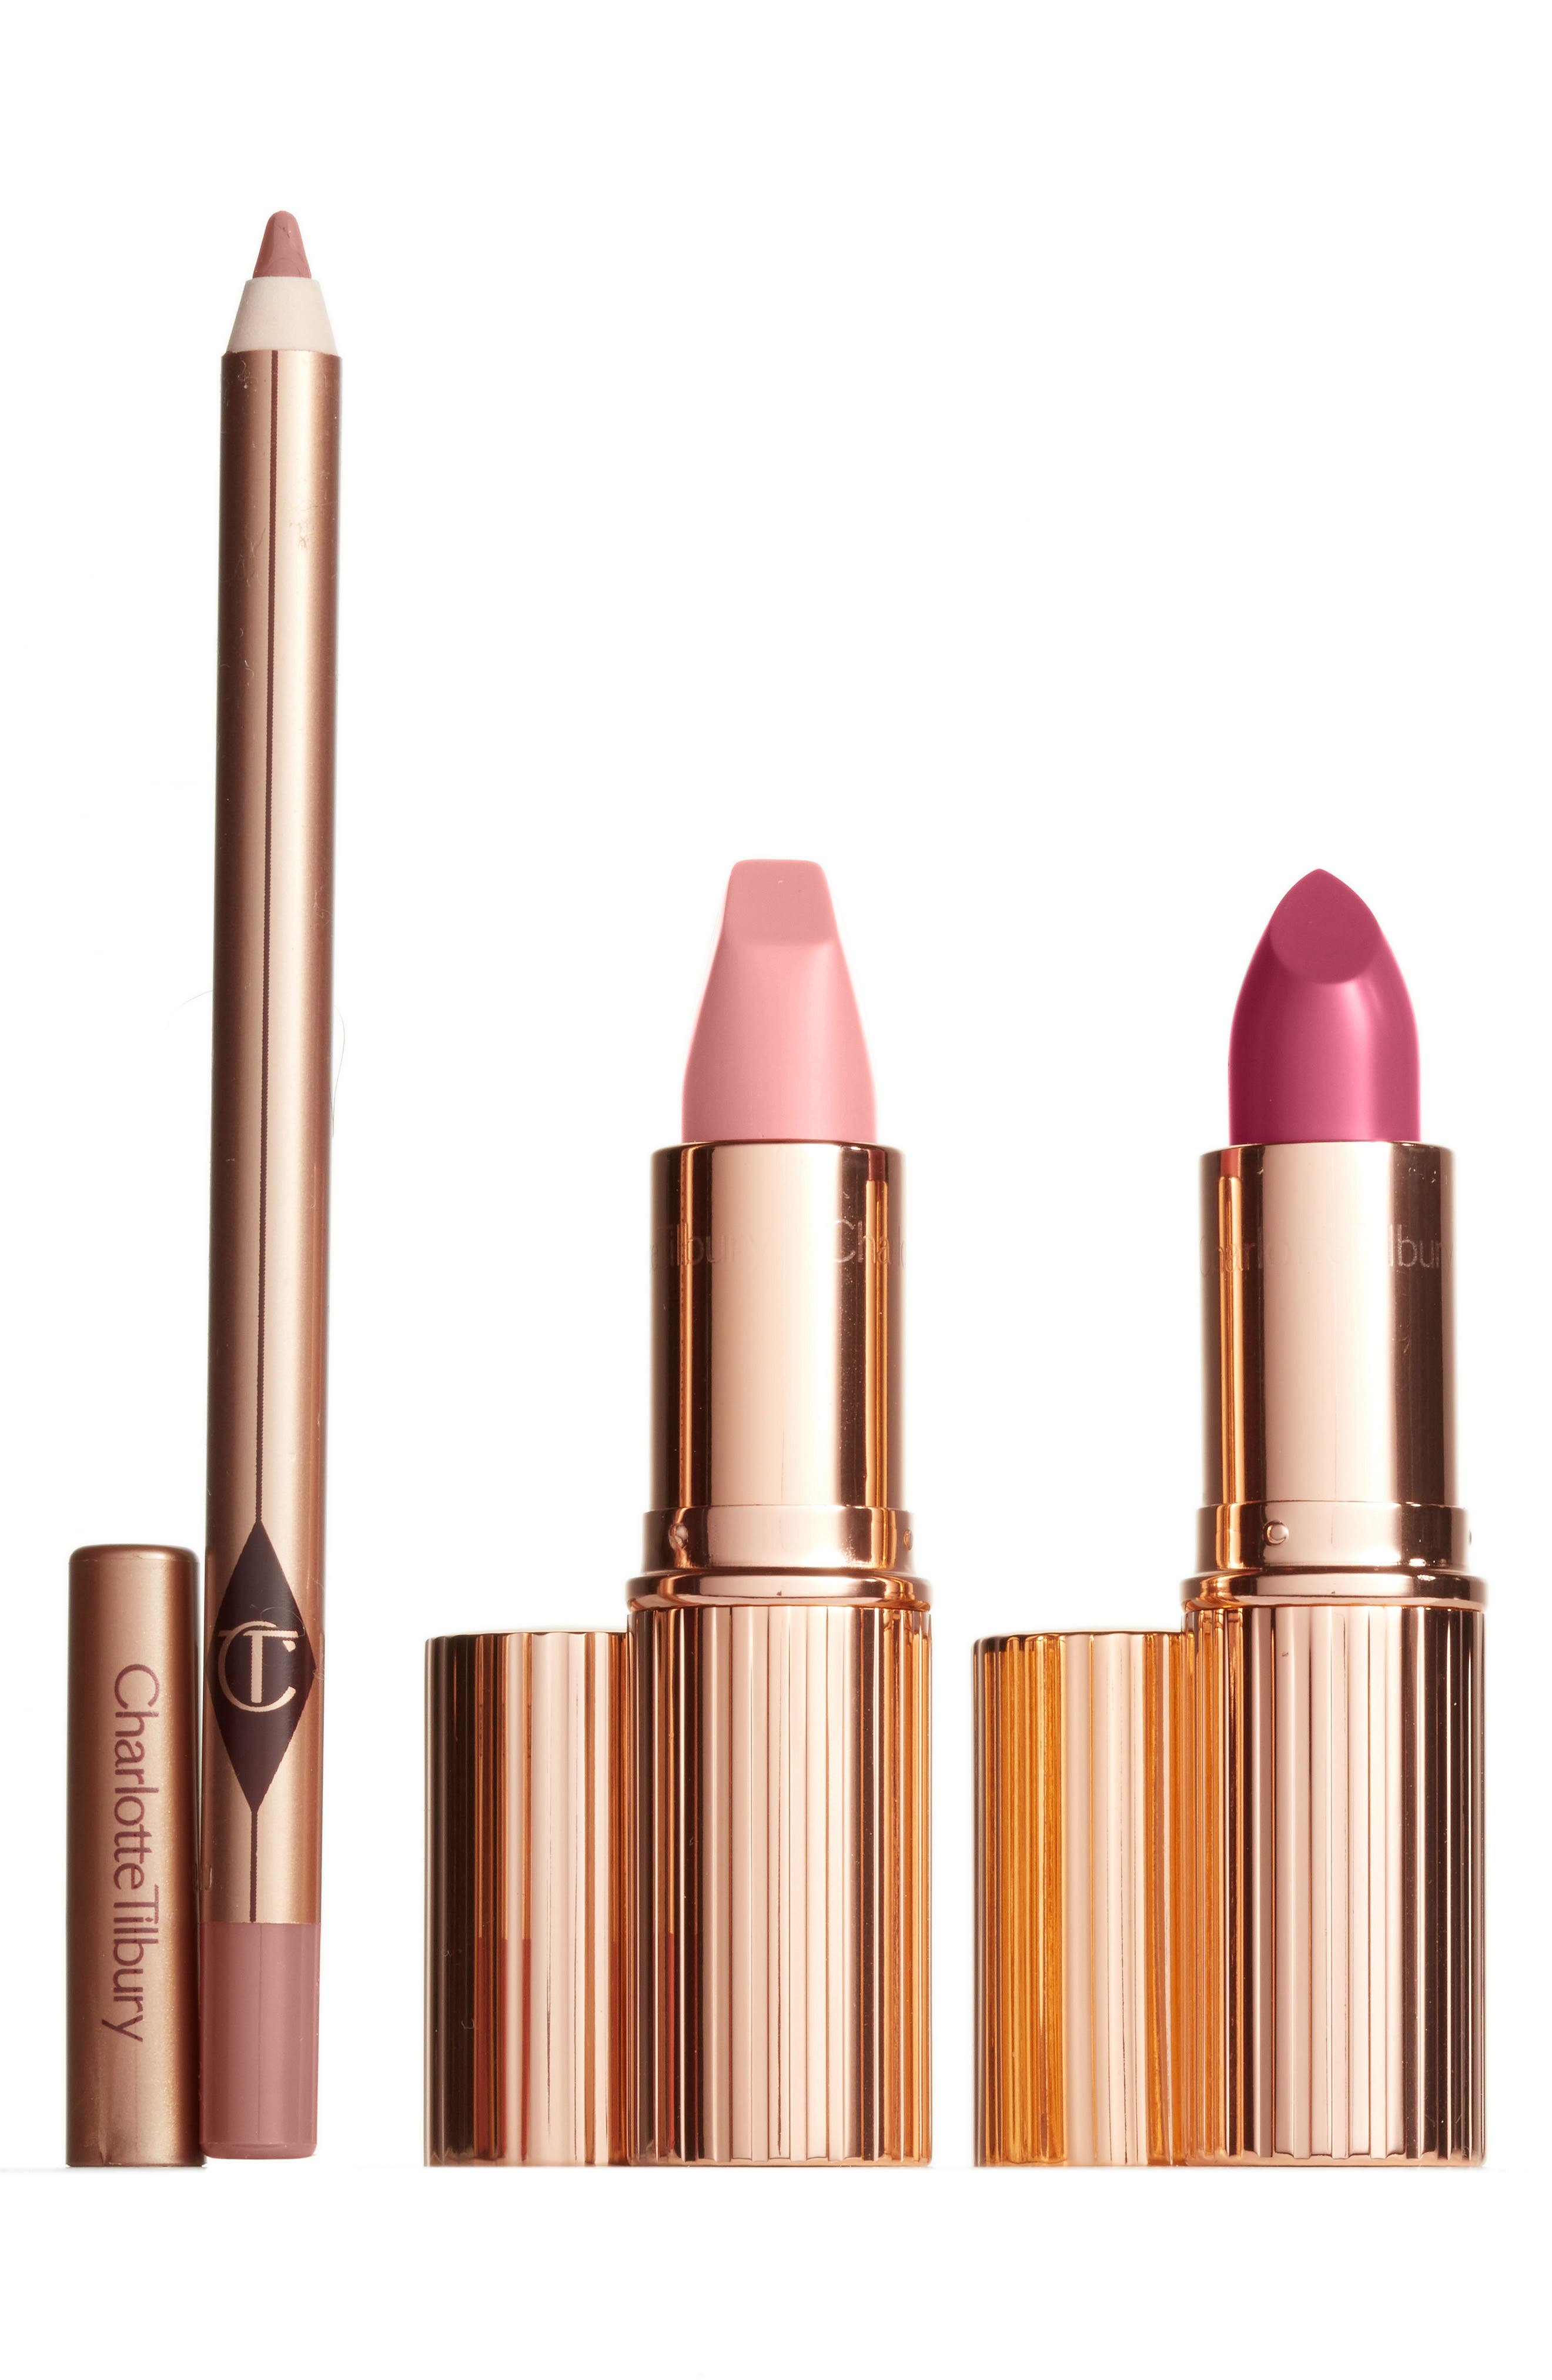 Charlotte Tilbury Hot Lips Lipstick Set ($90 Value)